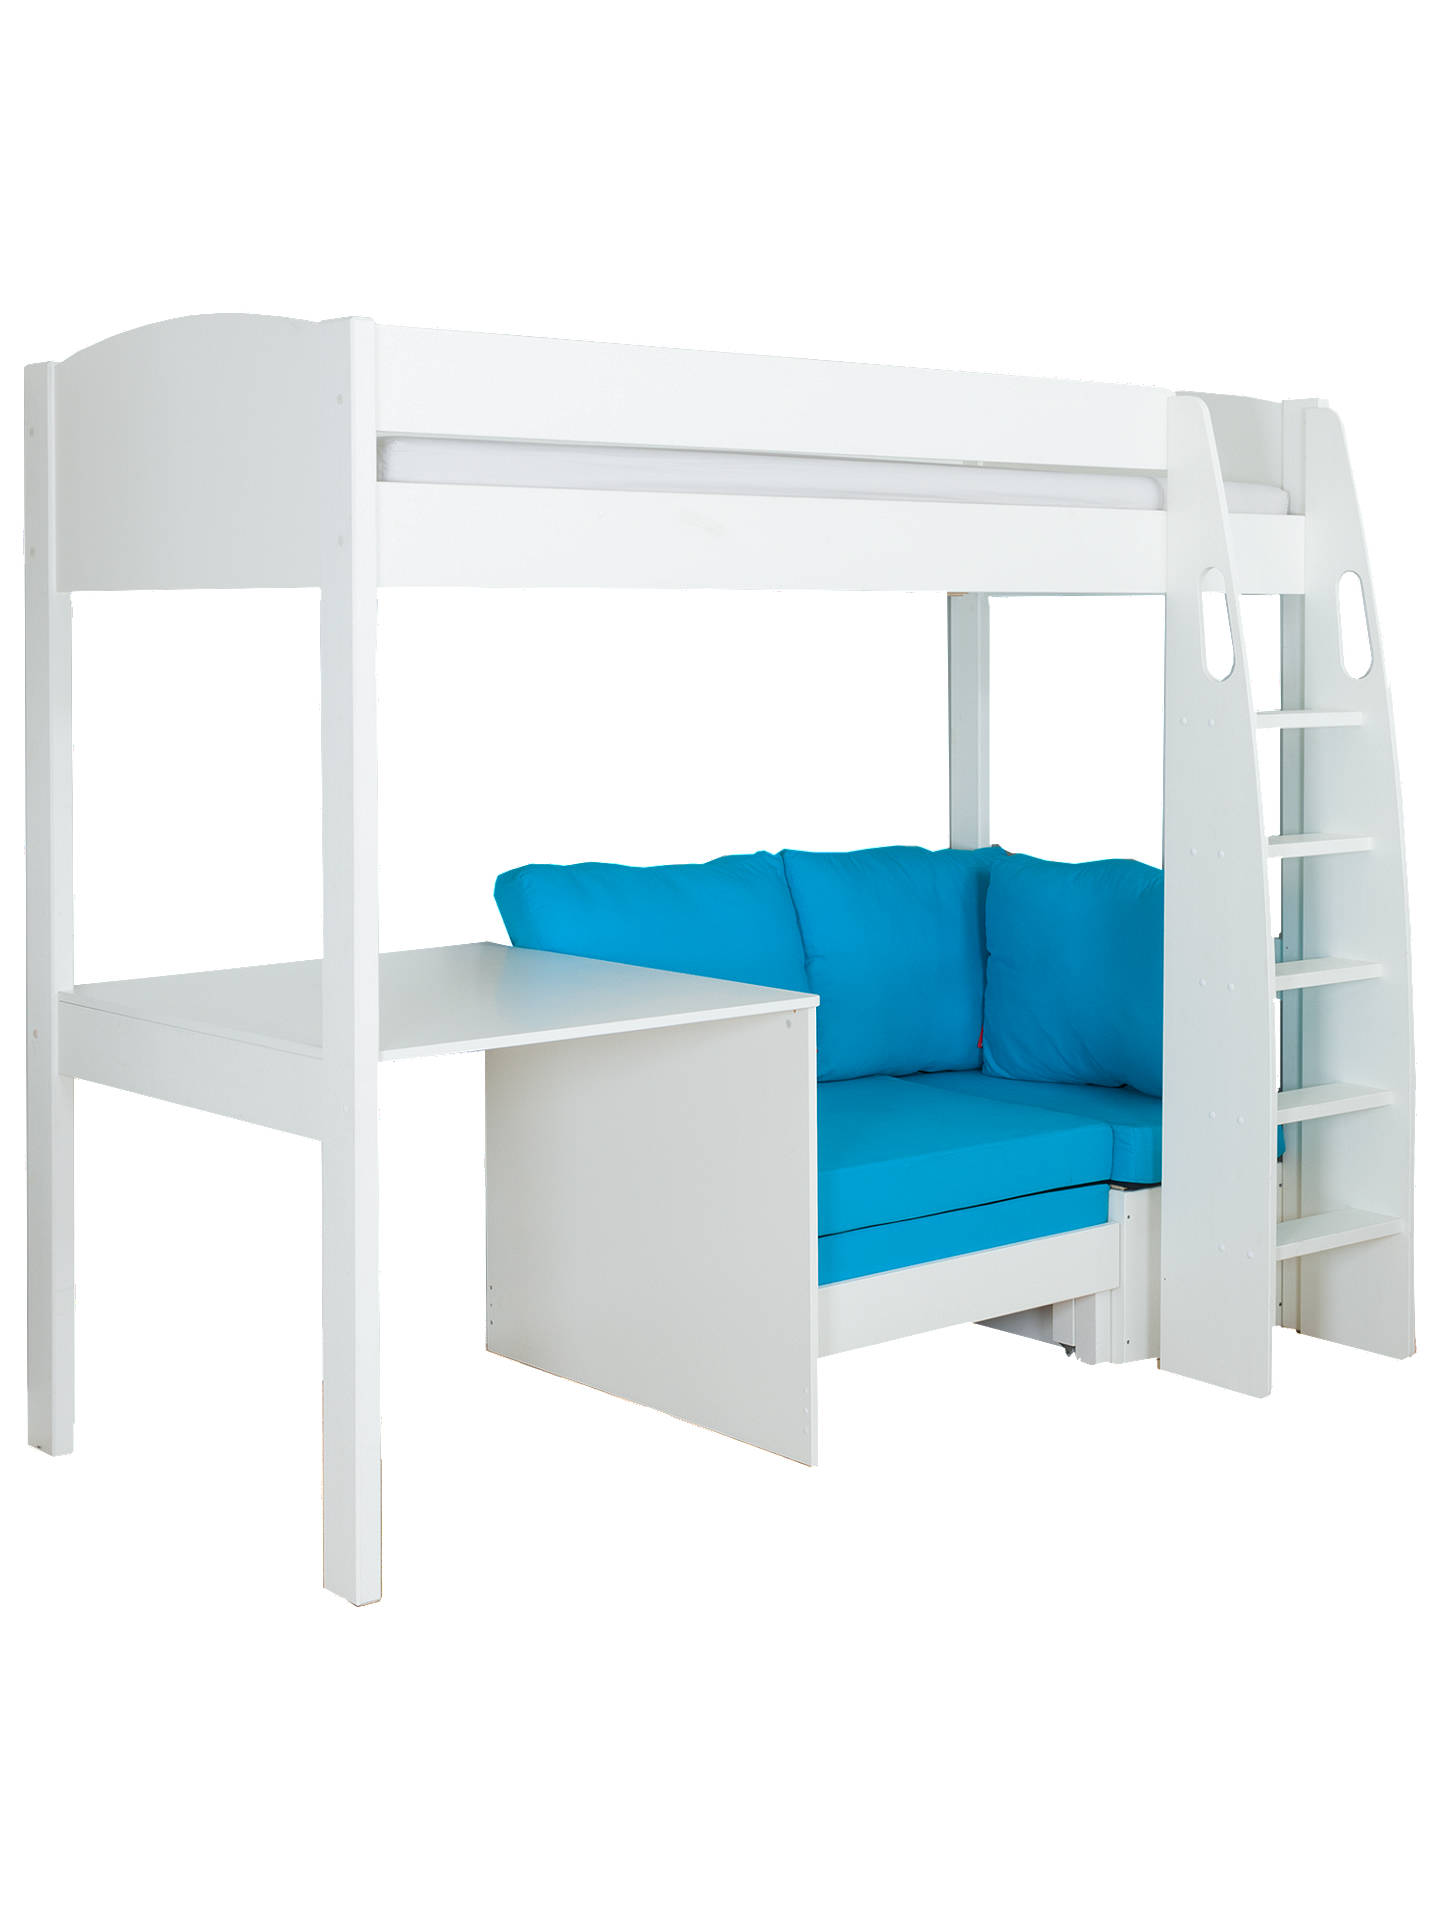 BuyStompa Uno S Plus High-Sleeper Bed with Fixed Desk and Chair Bed, White/Aqua Online at johnlewis.com